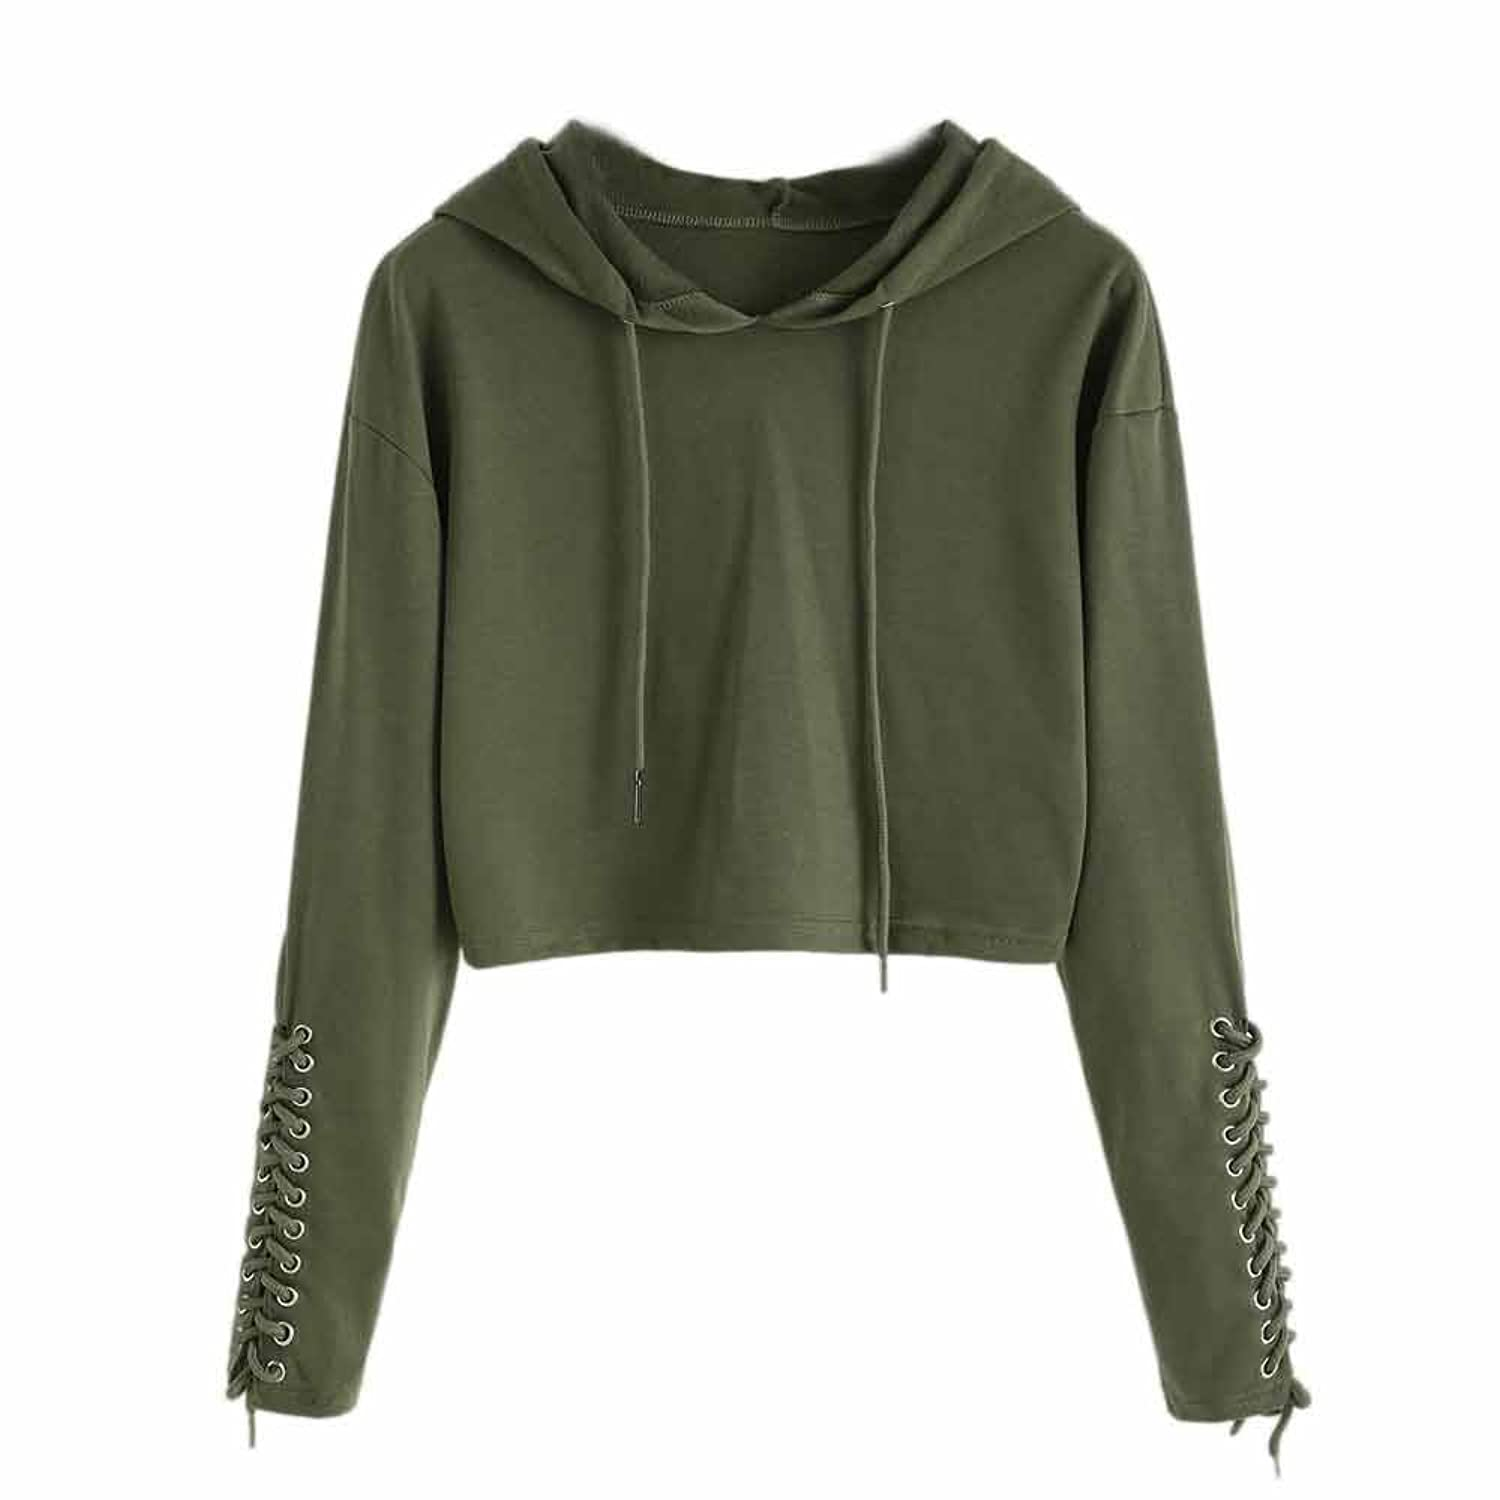 Birdfly Womens Lace-Up Hooded Sweatshirt Girls Casual Long Sleeve Crop Top Hoodies Pullover